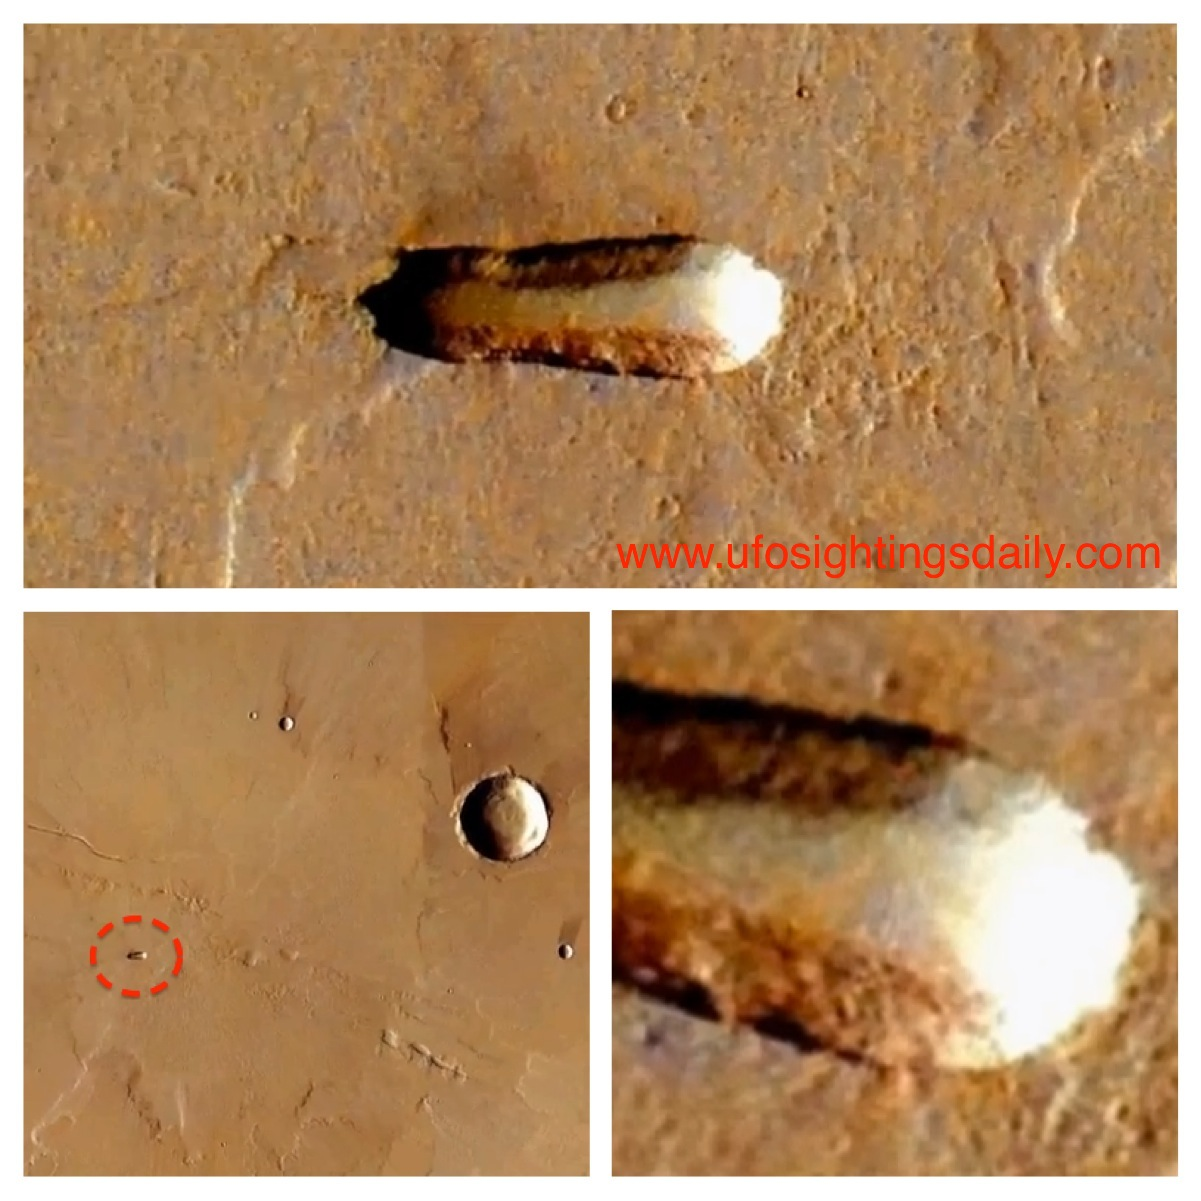 alien base on mars - photo #14